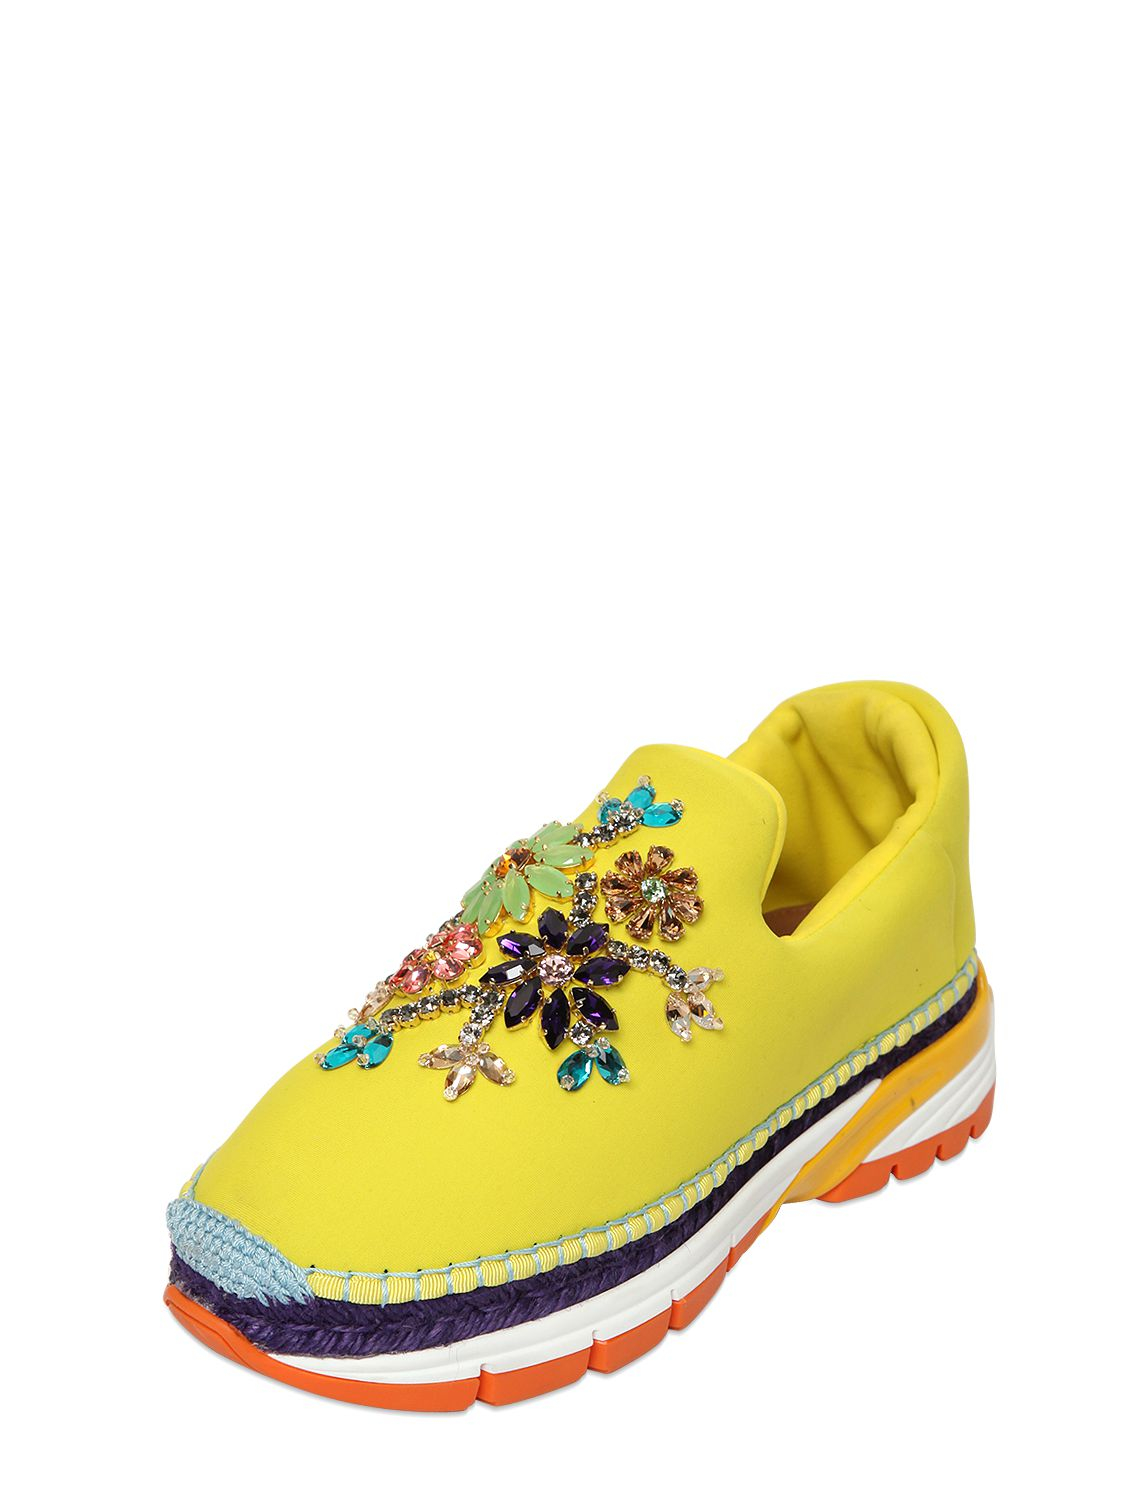 dolce gabbana 30mm jeweled neoprene sneakers in yellow lyst. Black Bedroom Furniture Sets. Home Design Ideas